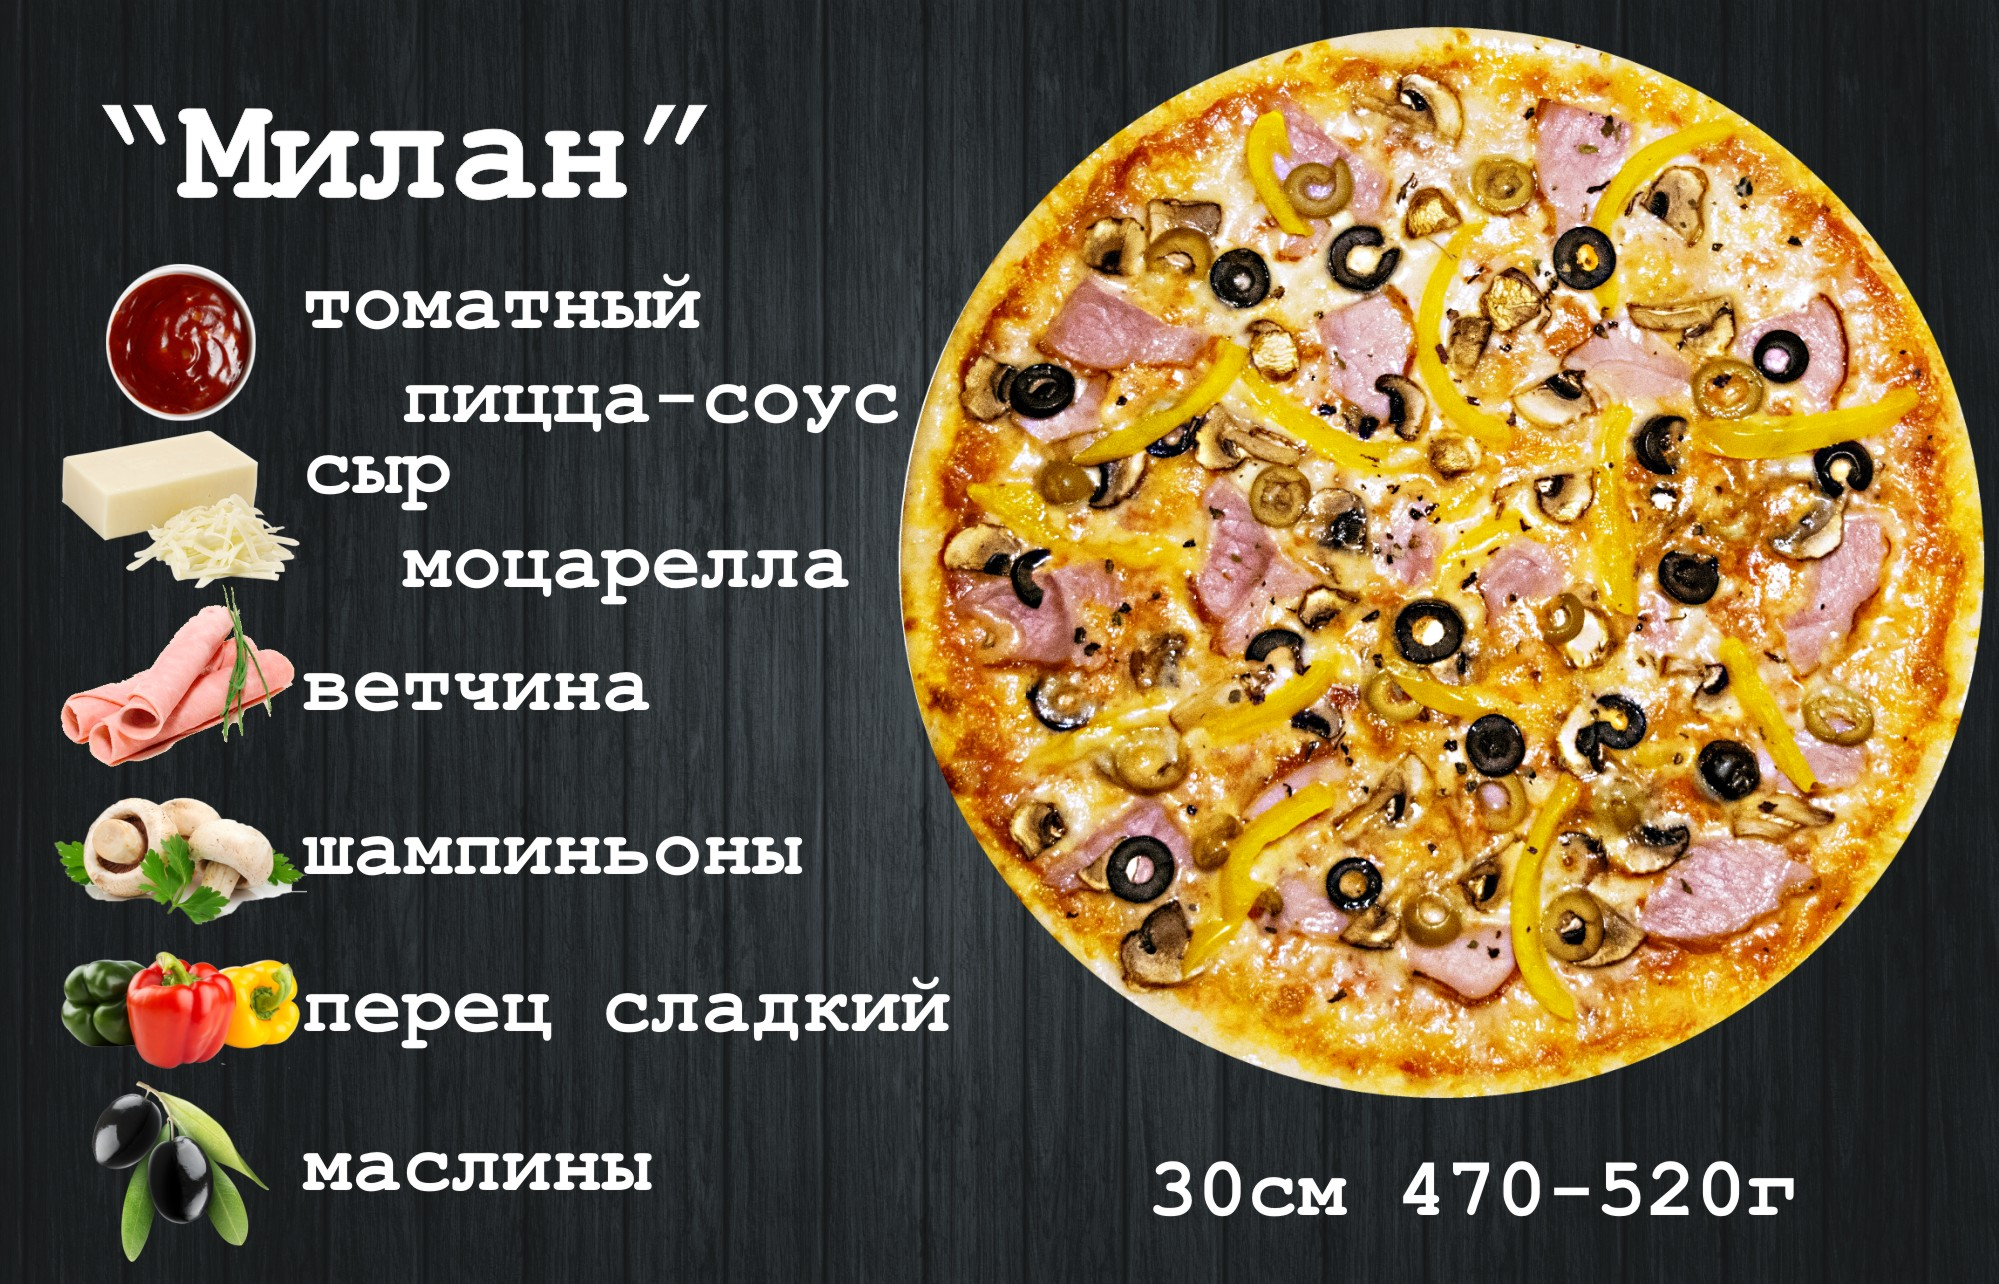 Милан_pizza_urbanfood_minsk